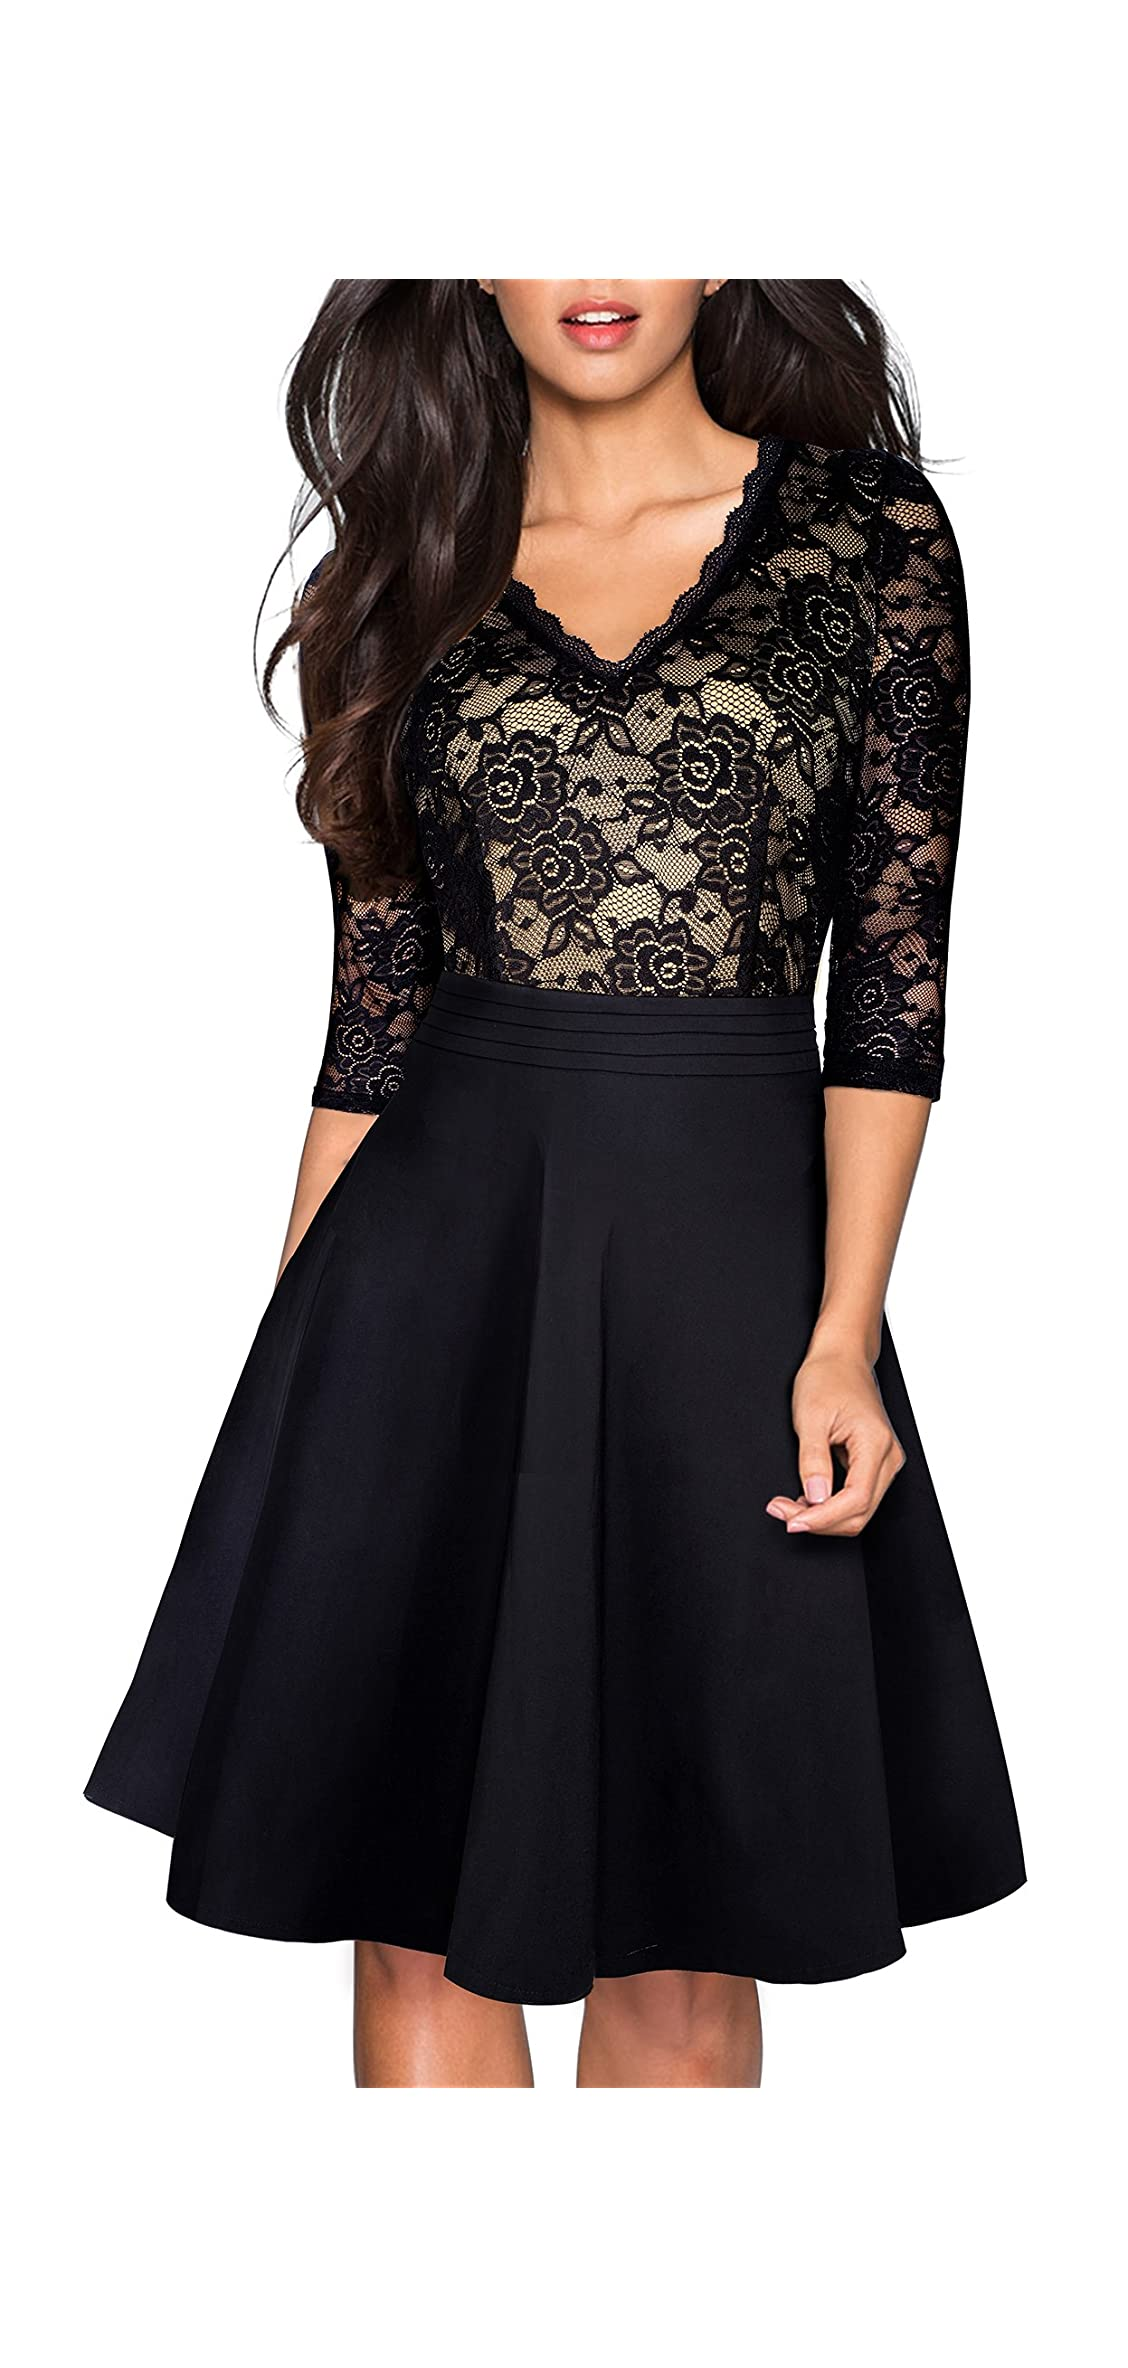 Women's Chic V-neck Lace Patchwork Flare Party Dress